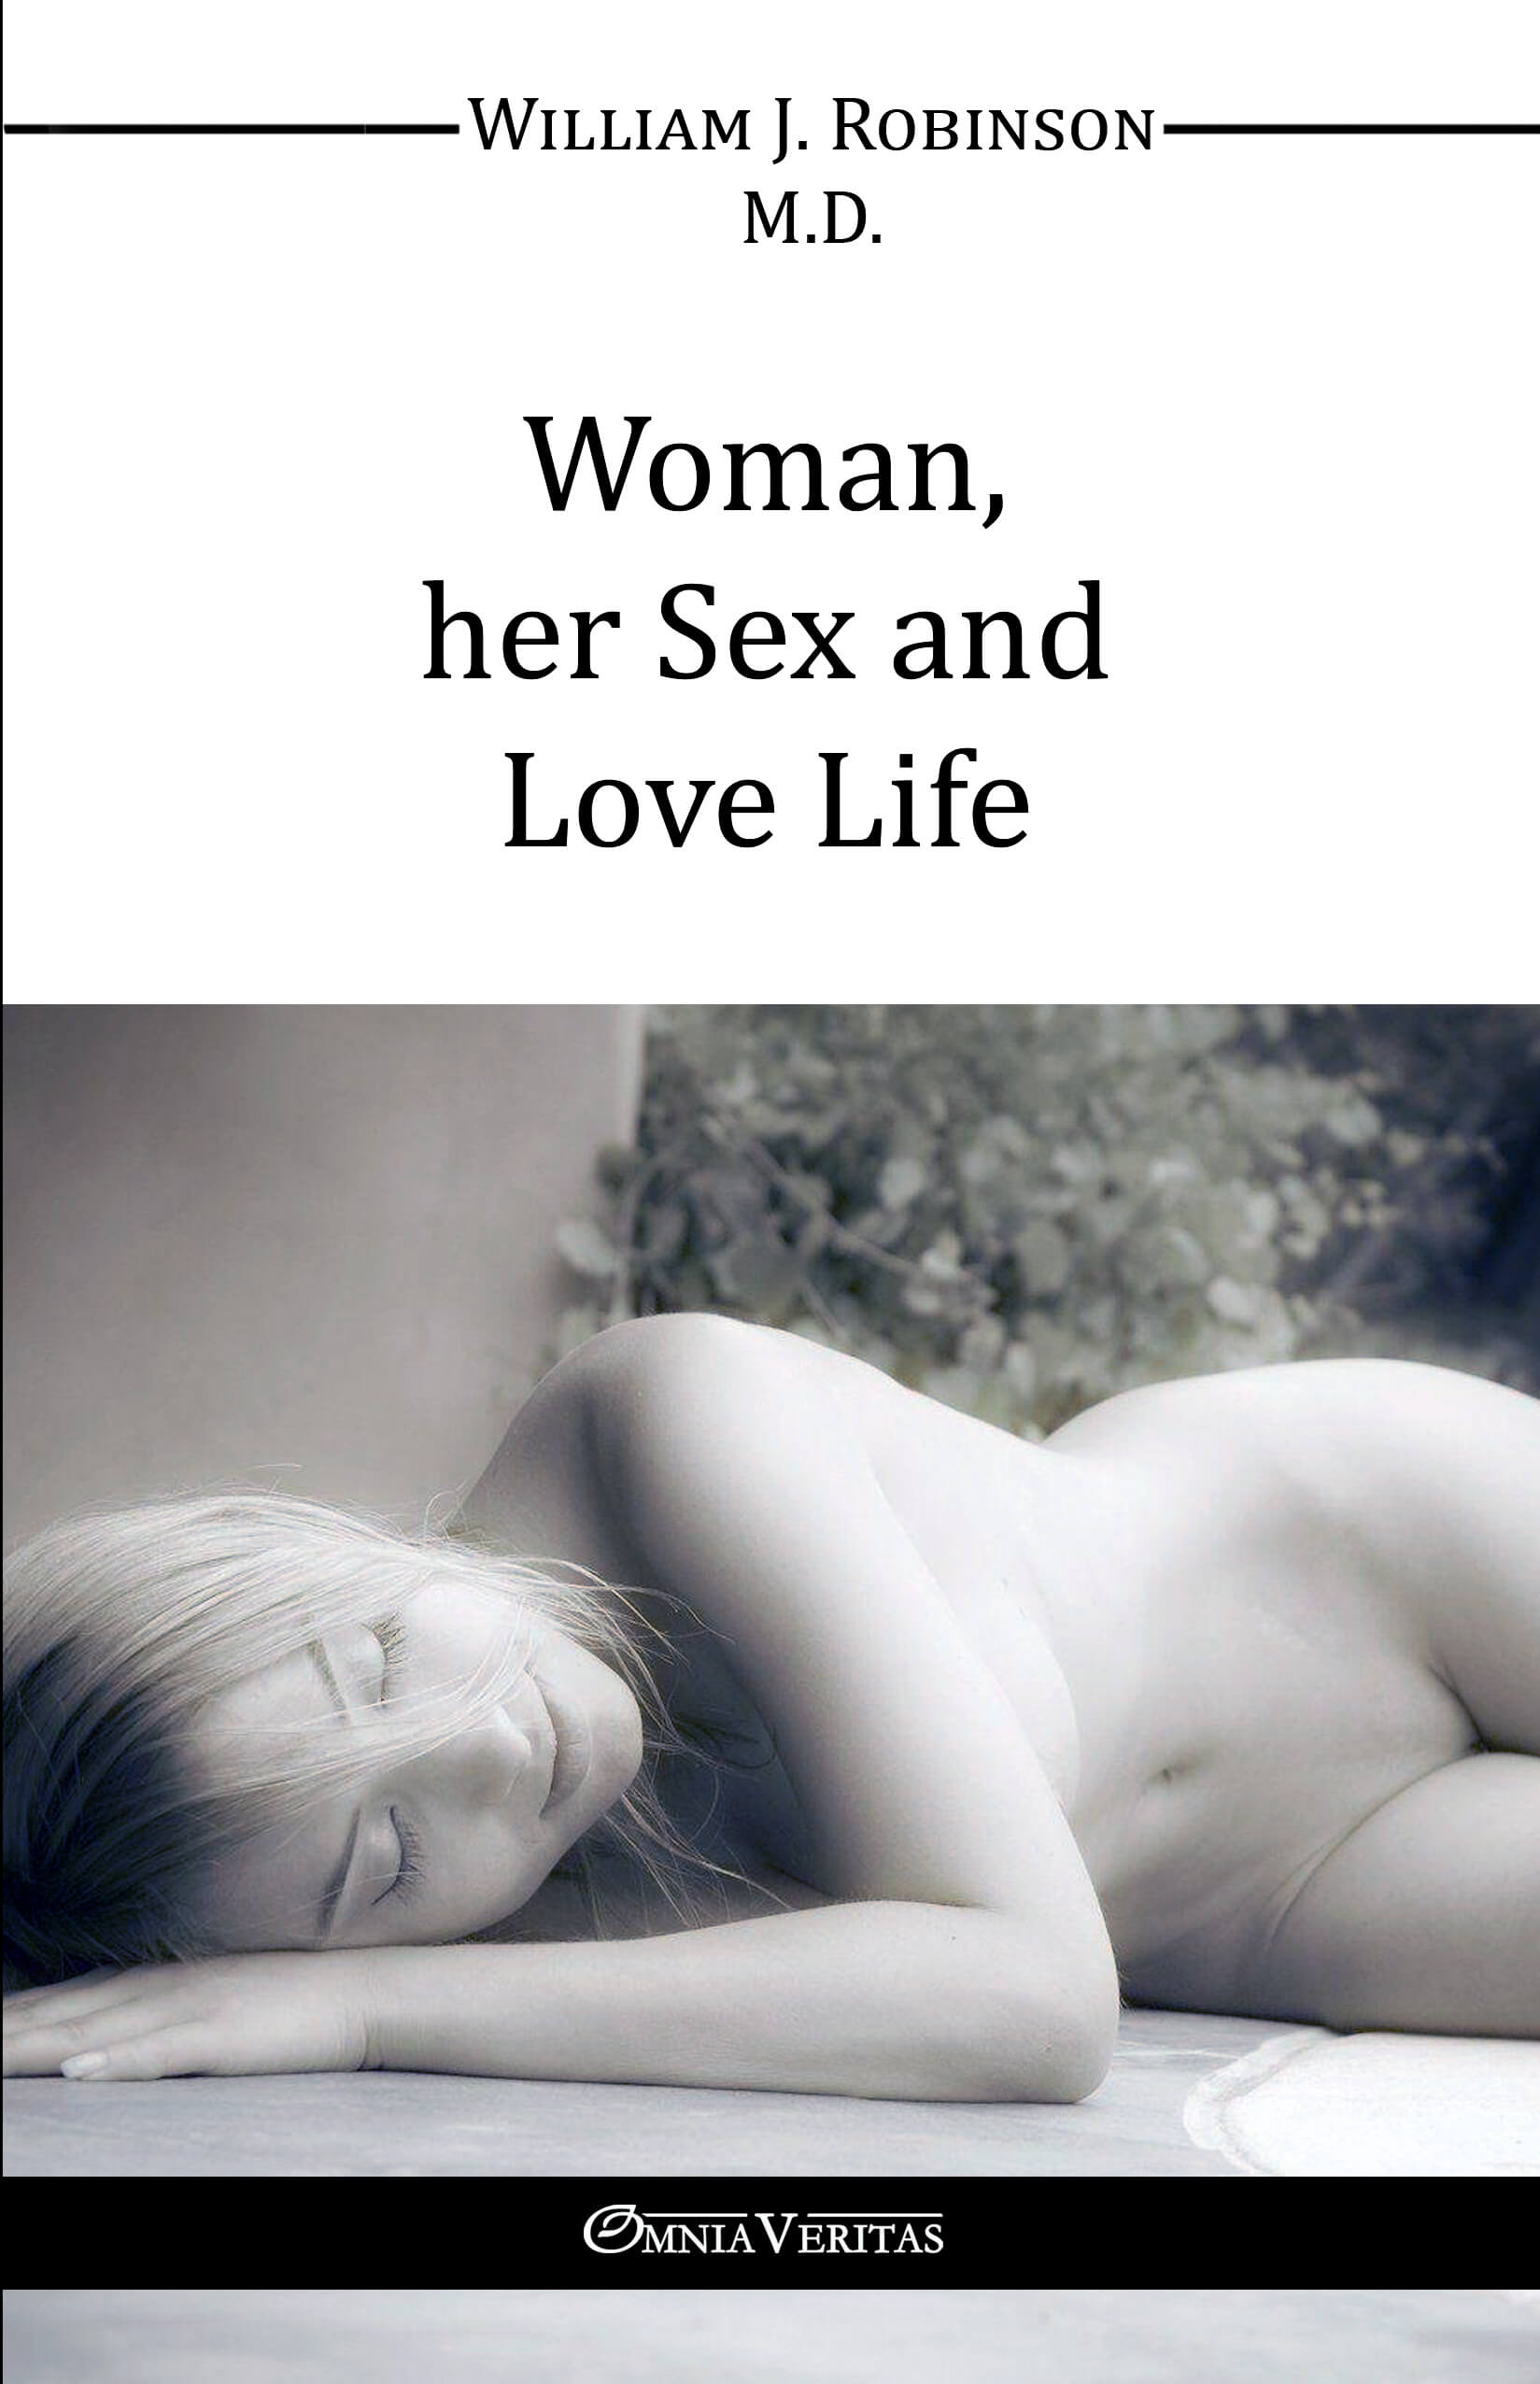 Her life love sex woman